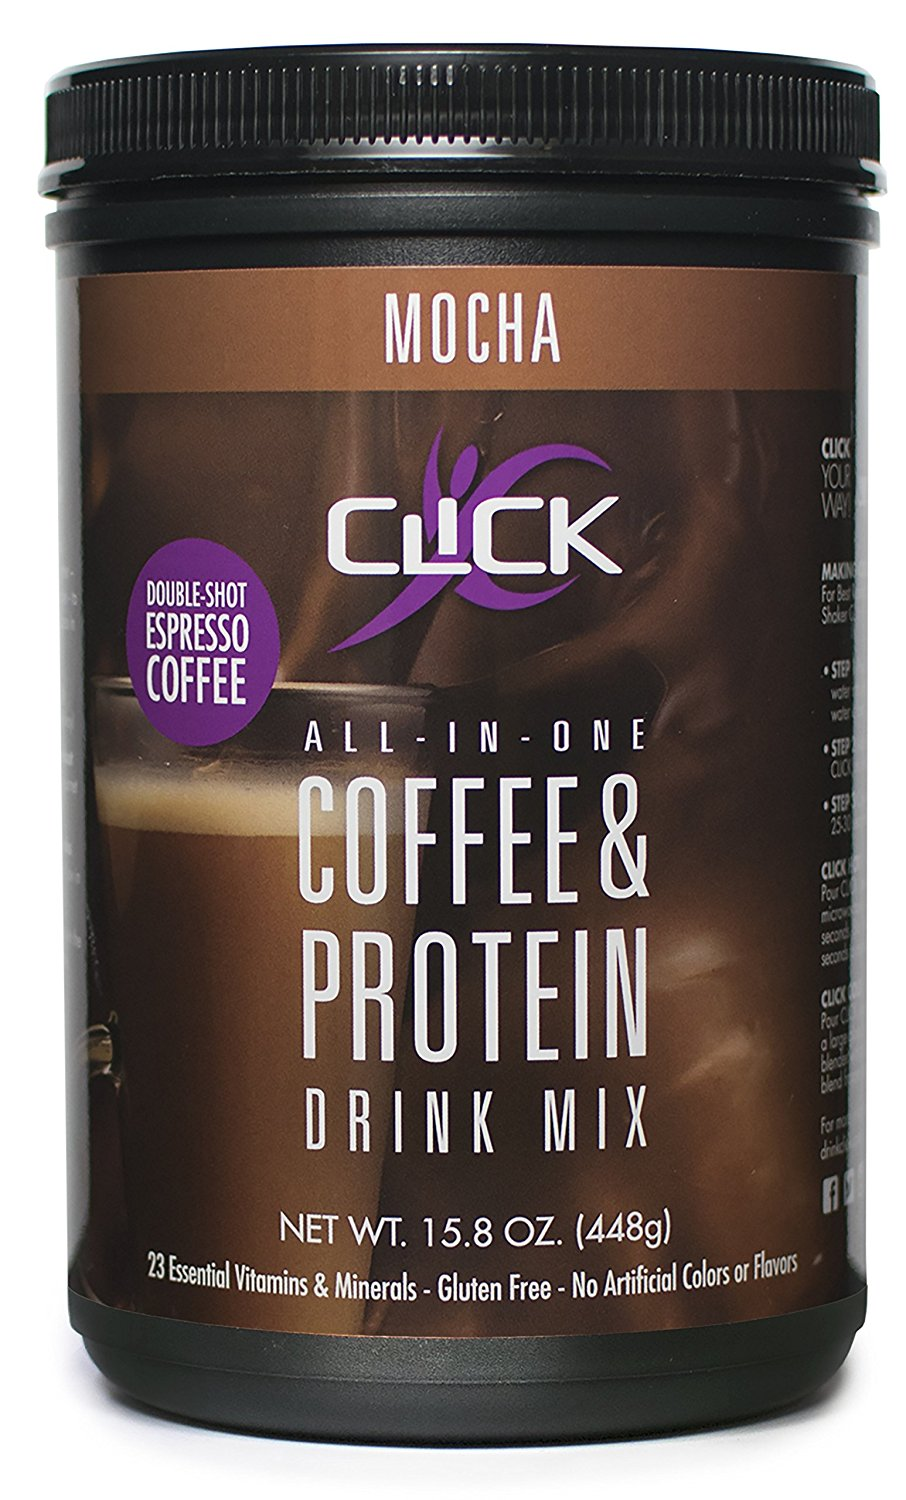 Mocha Protein Powder Provides Both Energy and Protein